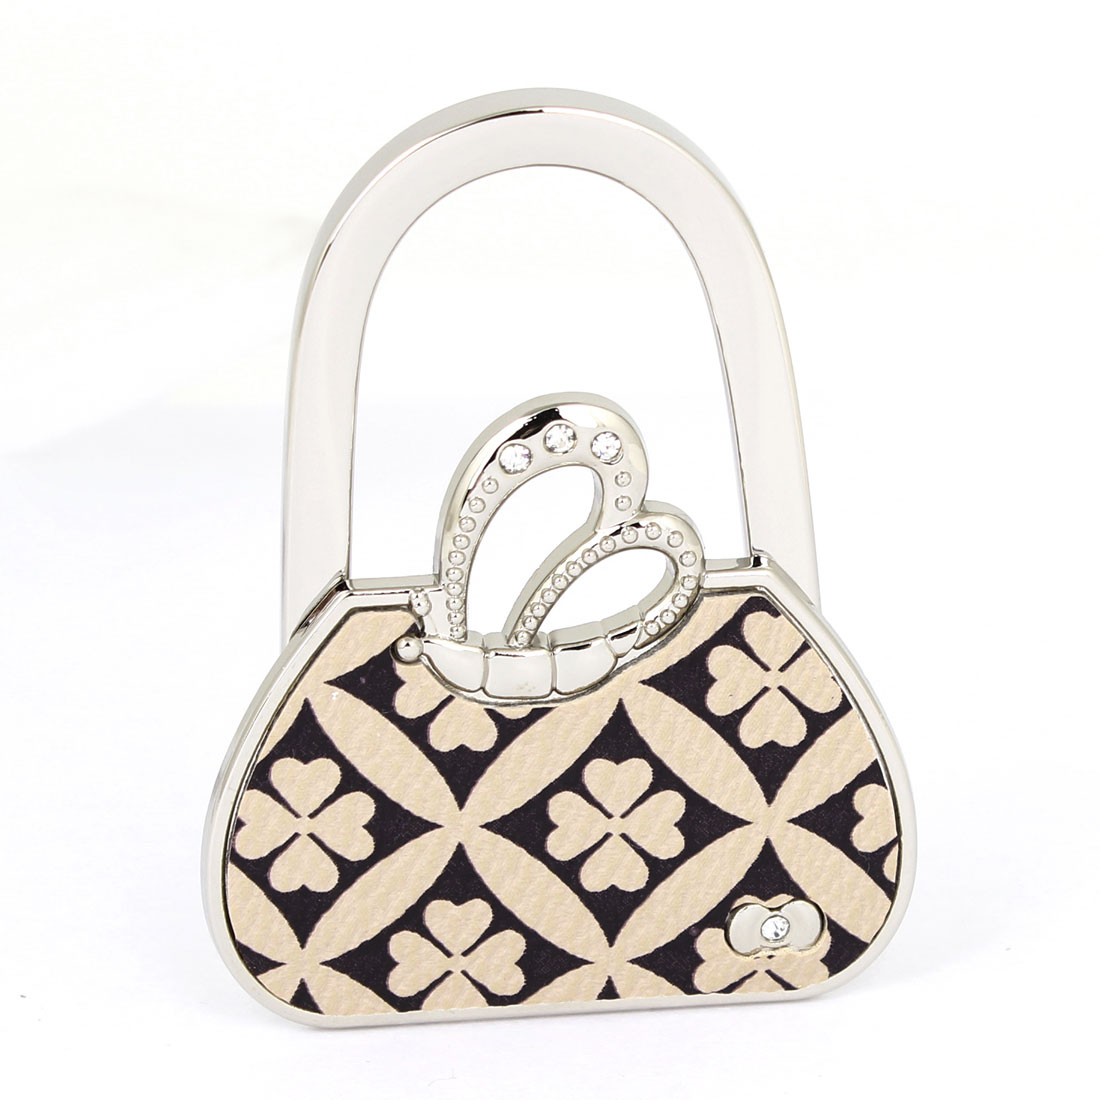 Clover Pattern Handbag Design Foldable Purse Hanger Holder Table Hook for Ladies